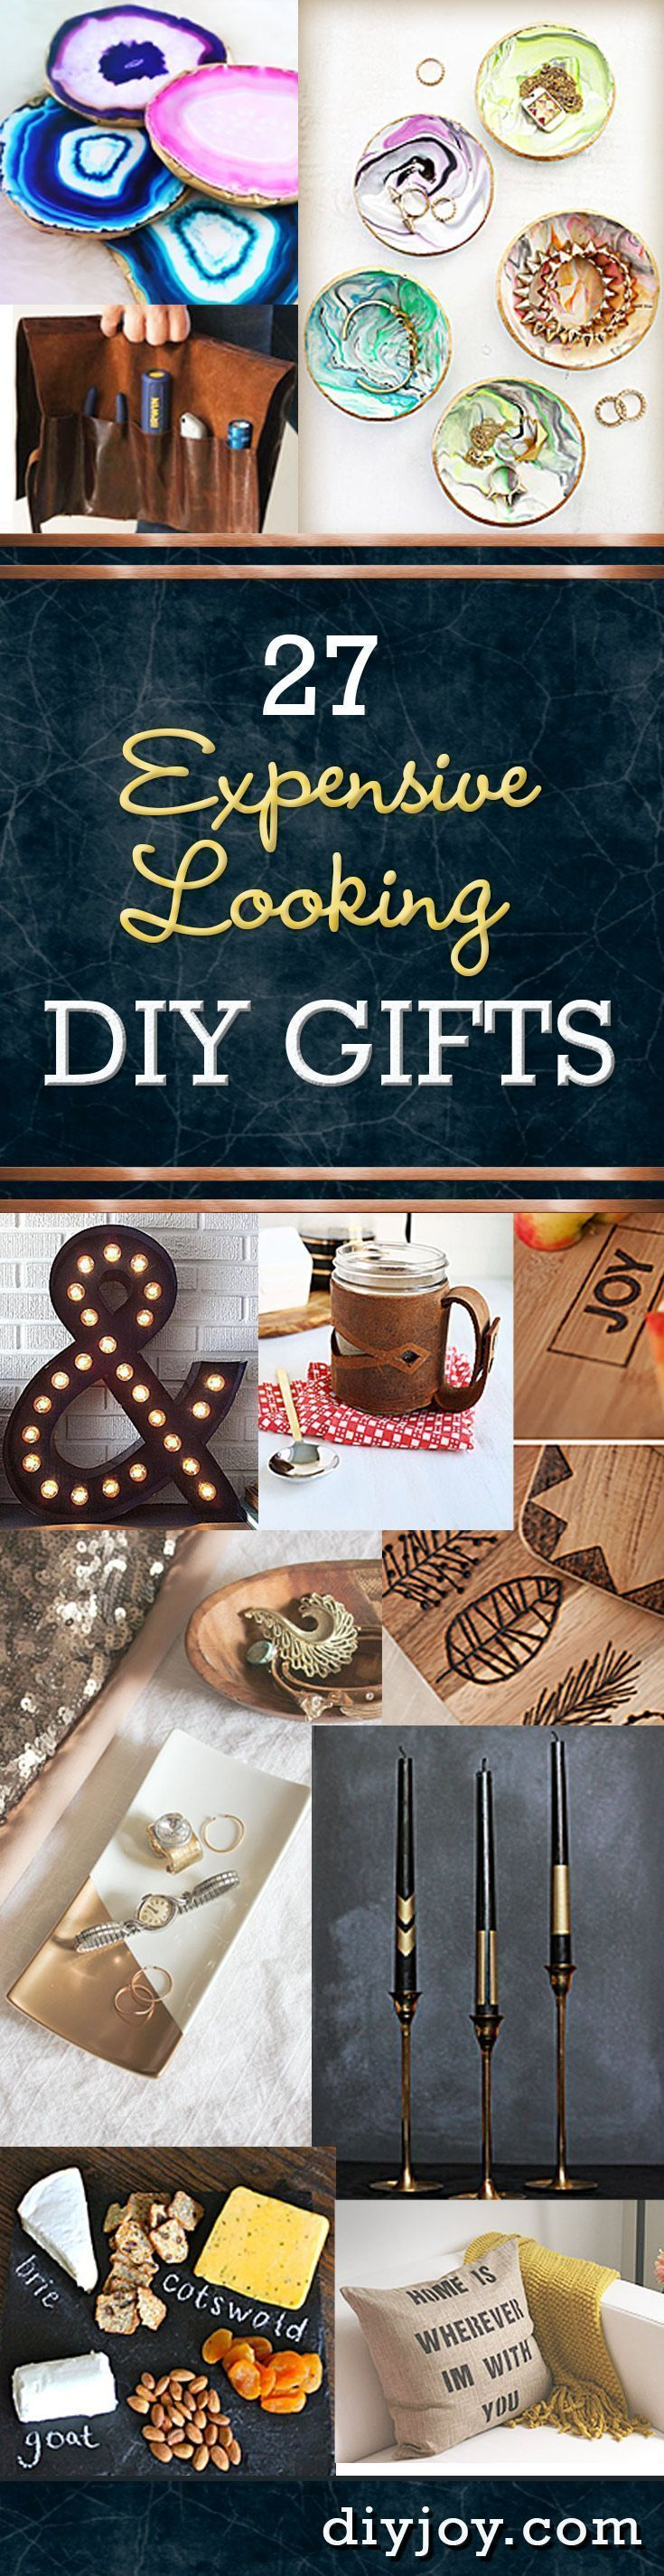 DIY Gifts and Creative Crafts and Projects that Make Cool DIY Gift Ideas CHEAP!